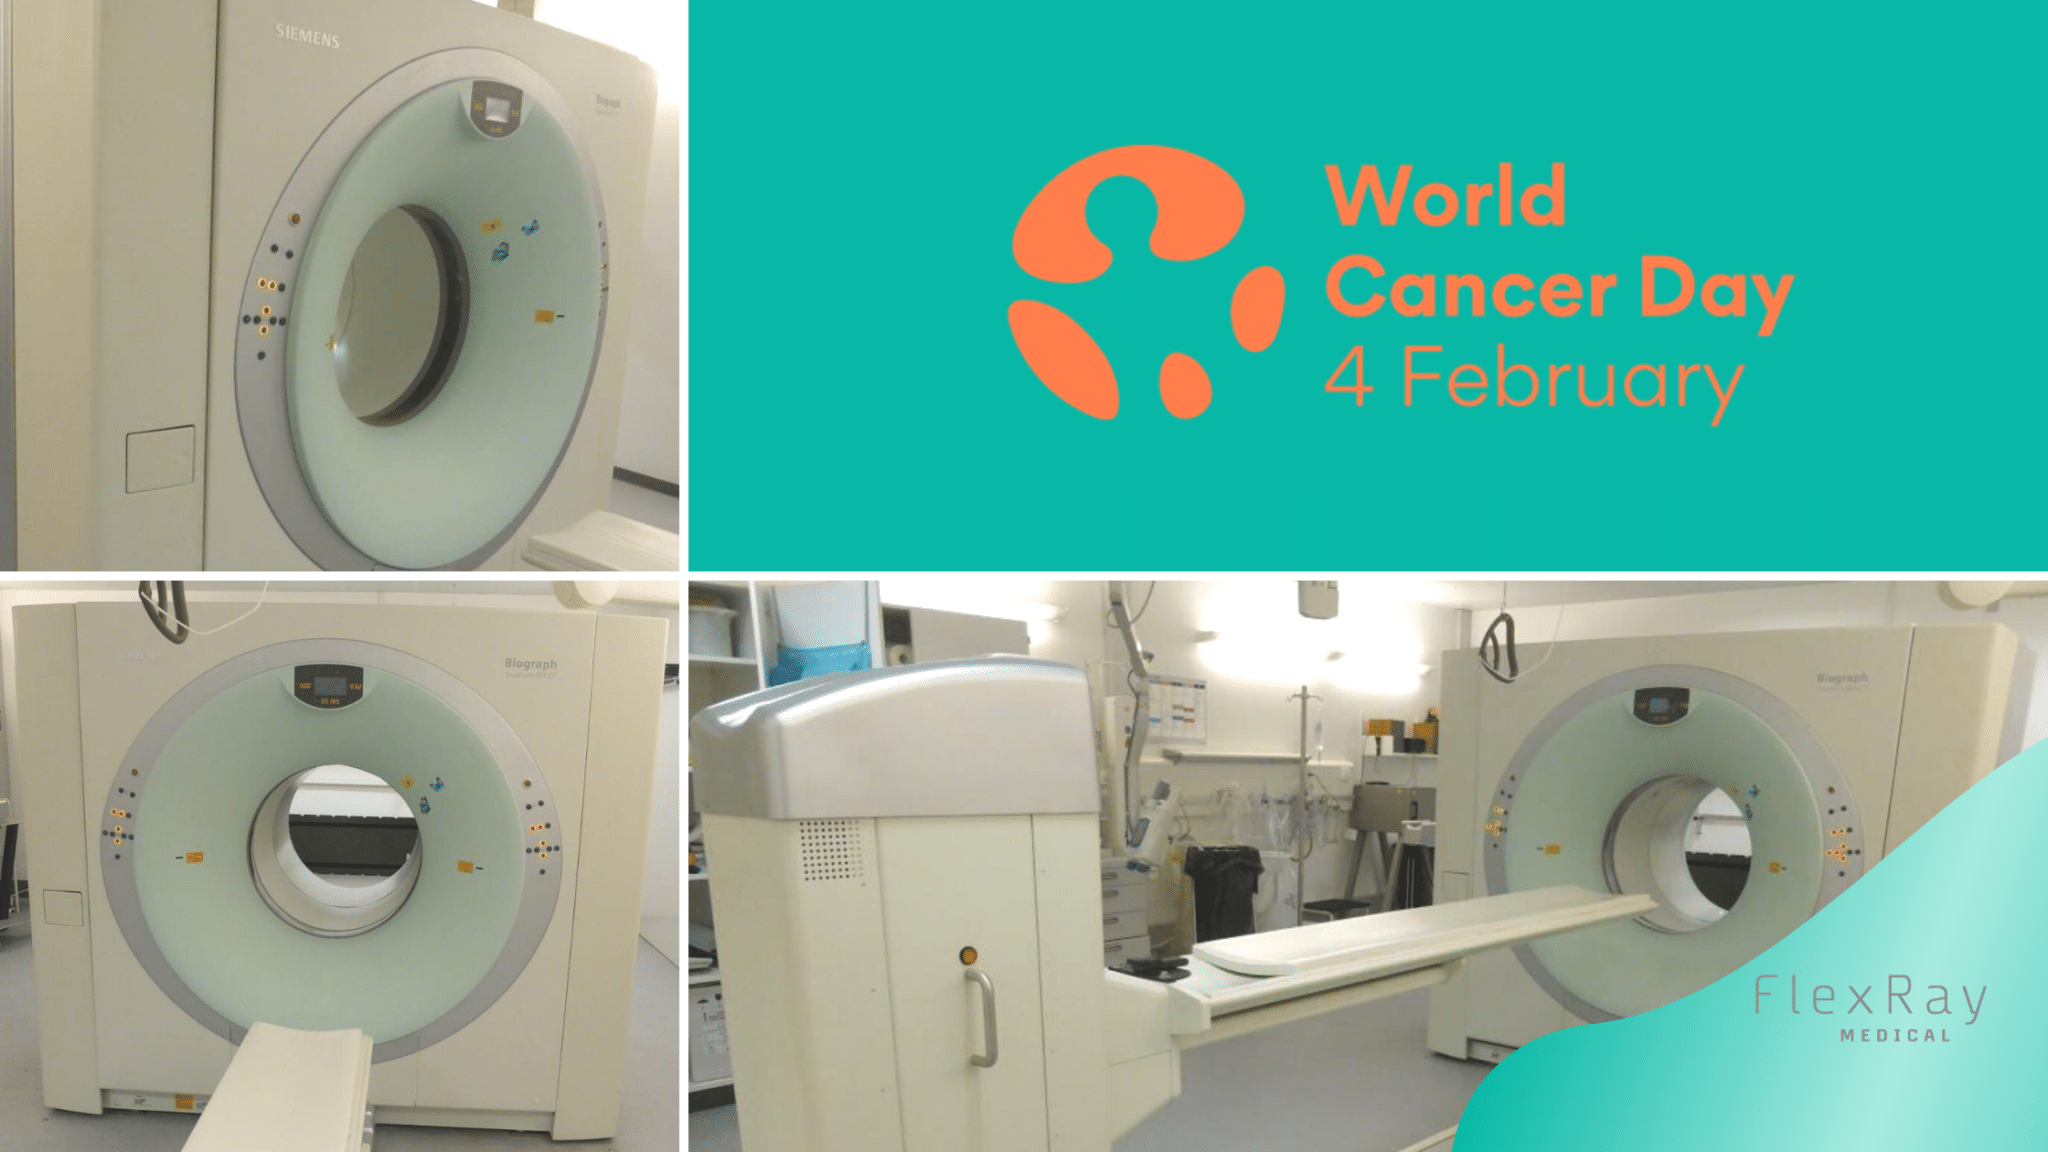 PET-CT scan can detect cancer | World Cancer Day